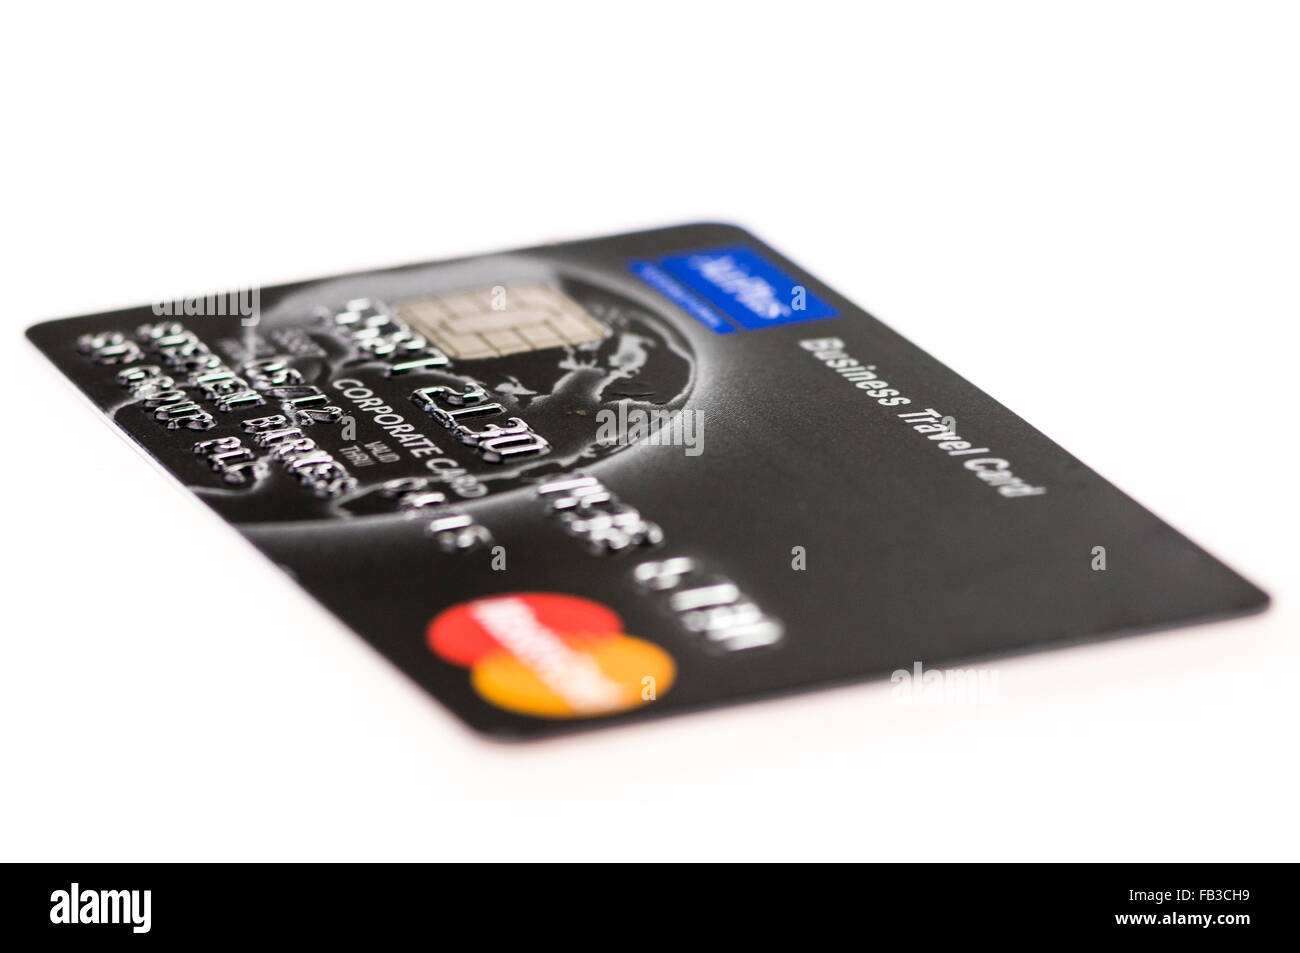 Airplus Business Travel Credit Card For Expenses Stock Photo